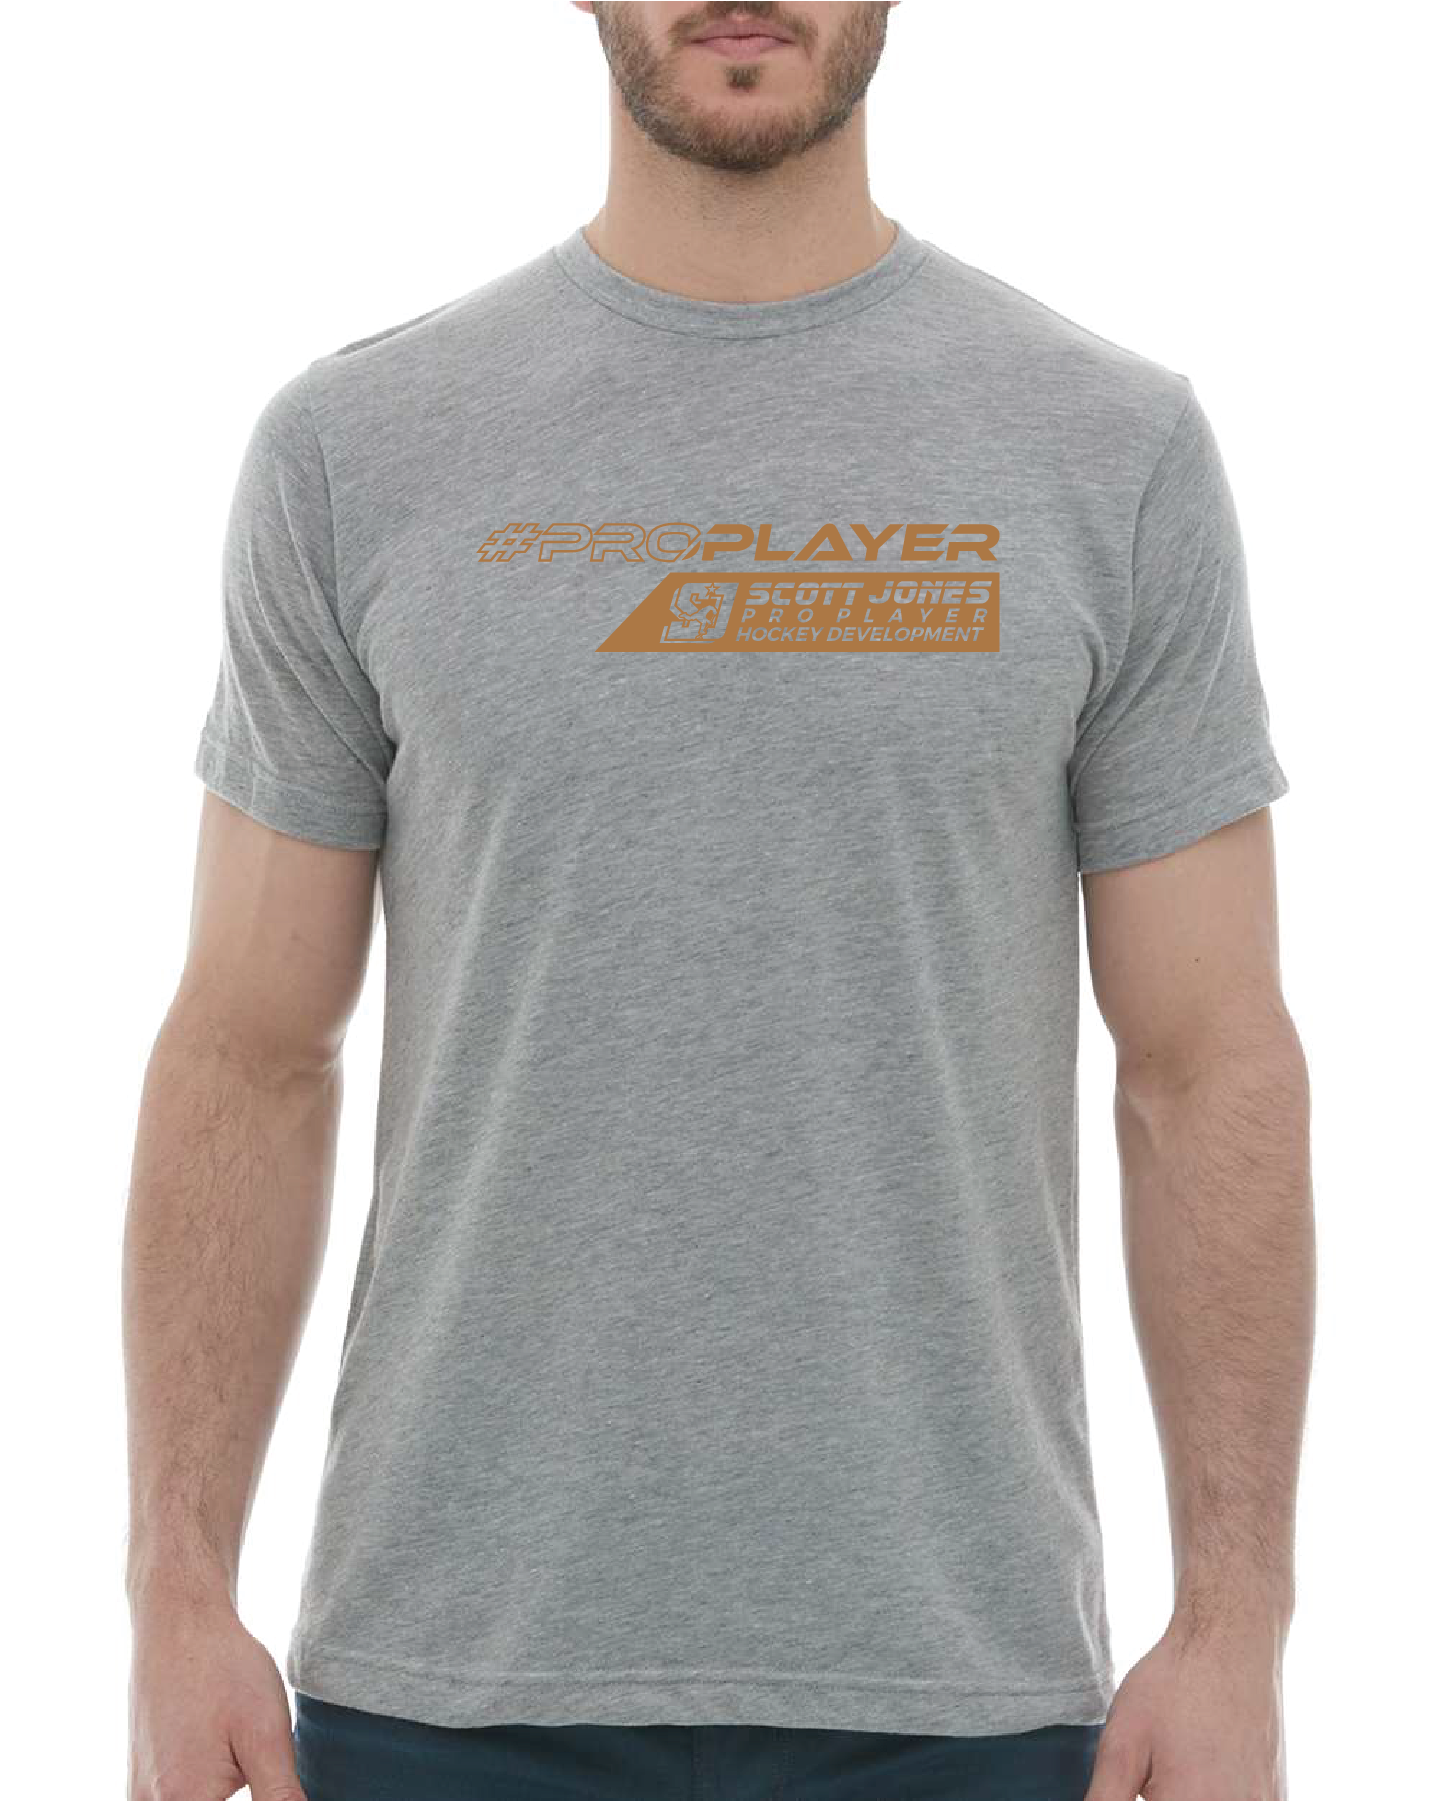 Graphic Pro Player Tee